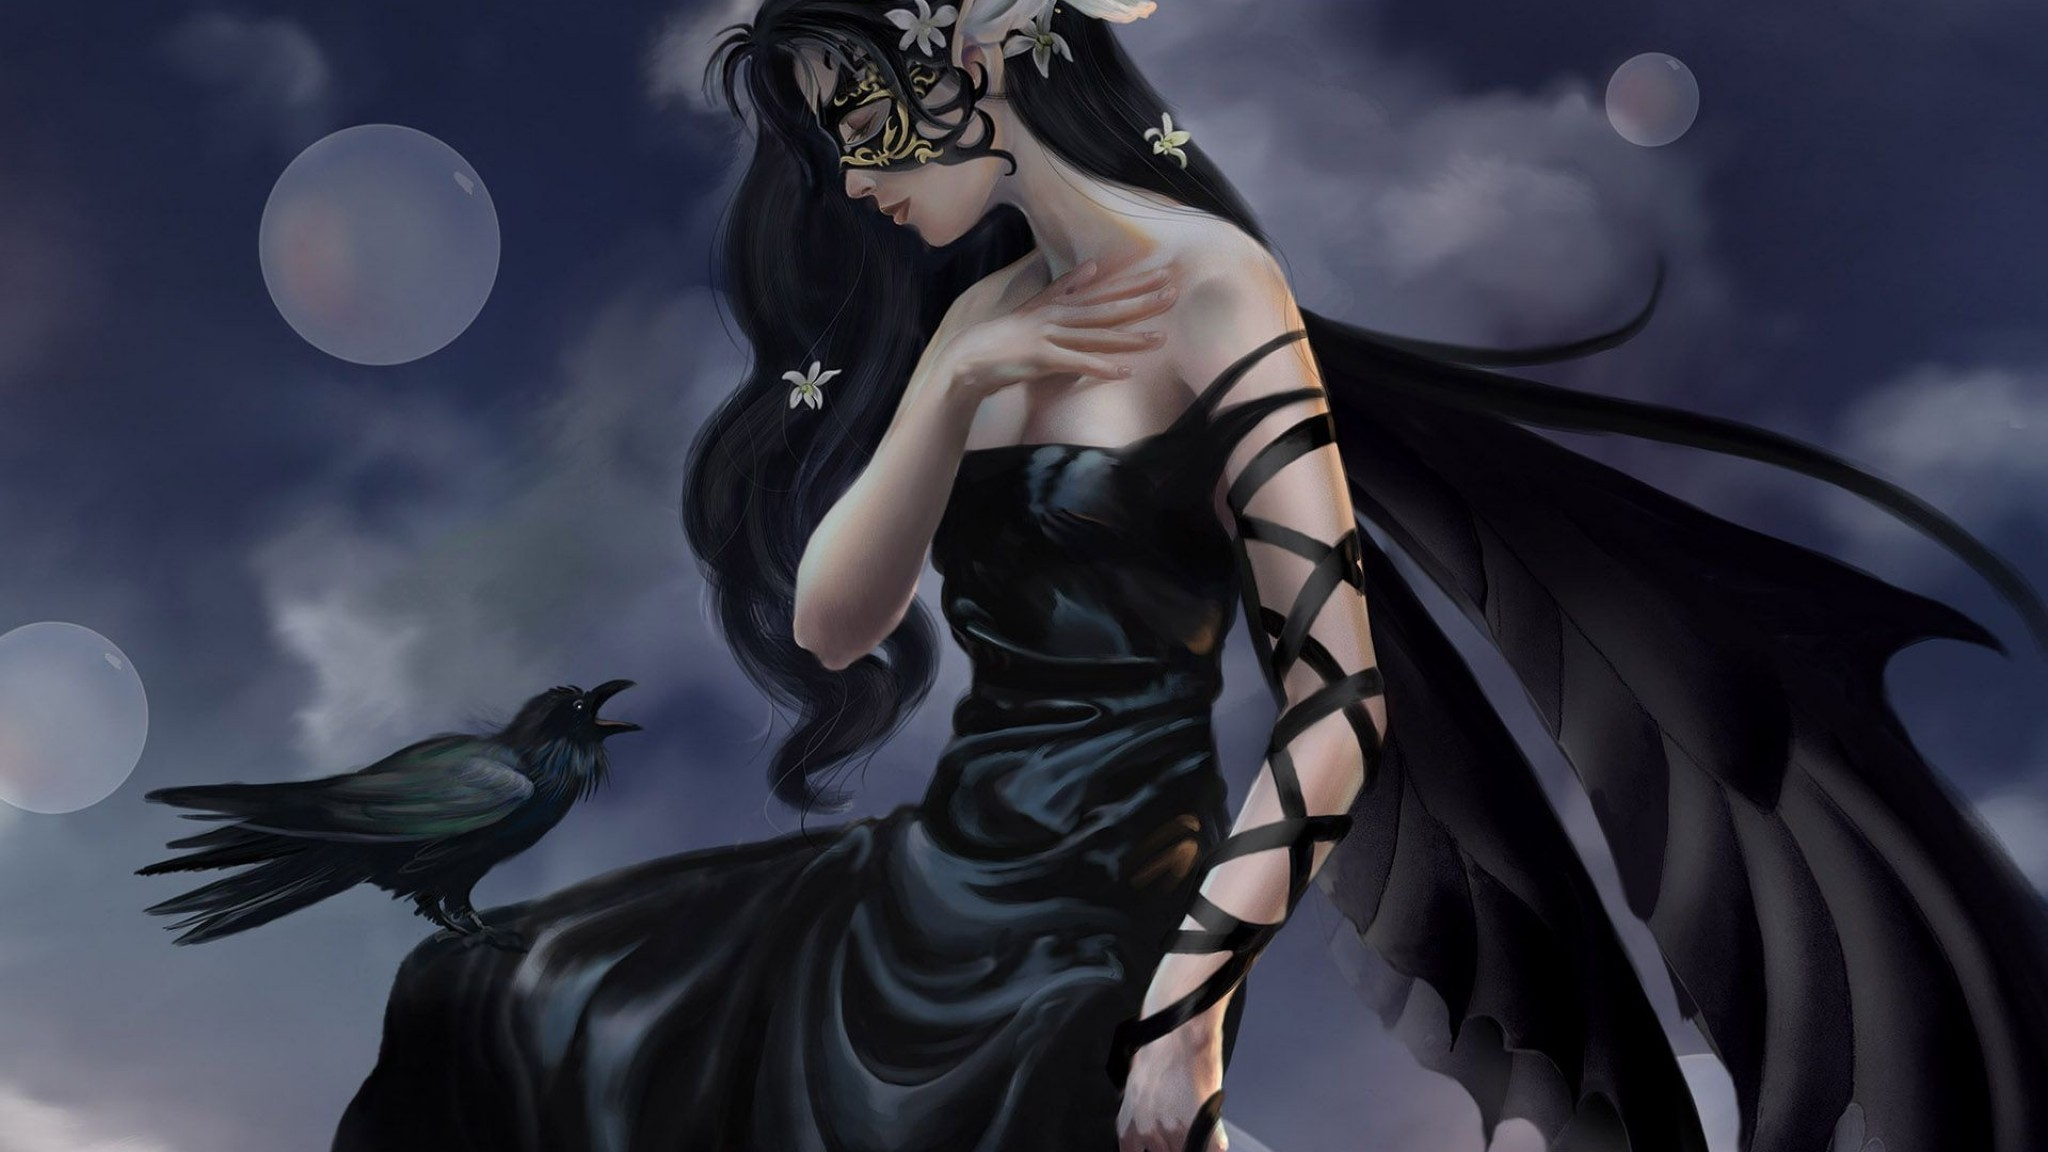 Dark fairy wallpapers 56 images 2048x1152 dark fairy wallpapers wallpaper dark fairy wallpapers hd altavistaventures Image collections